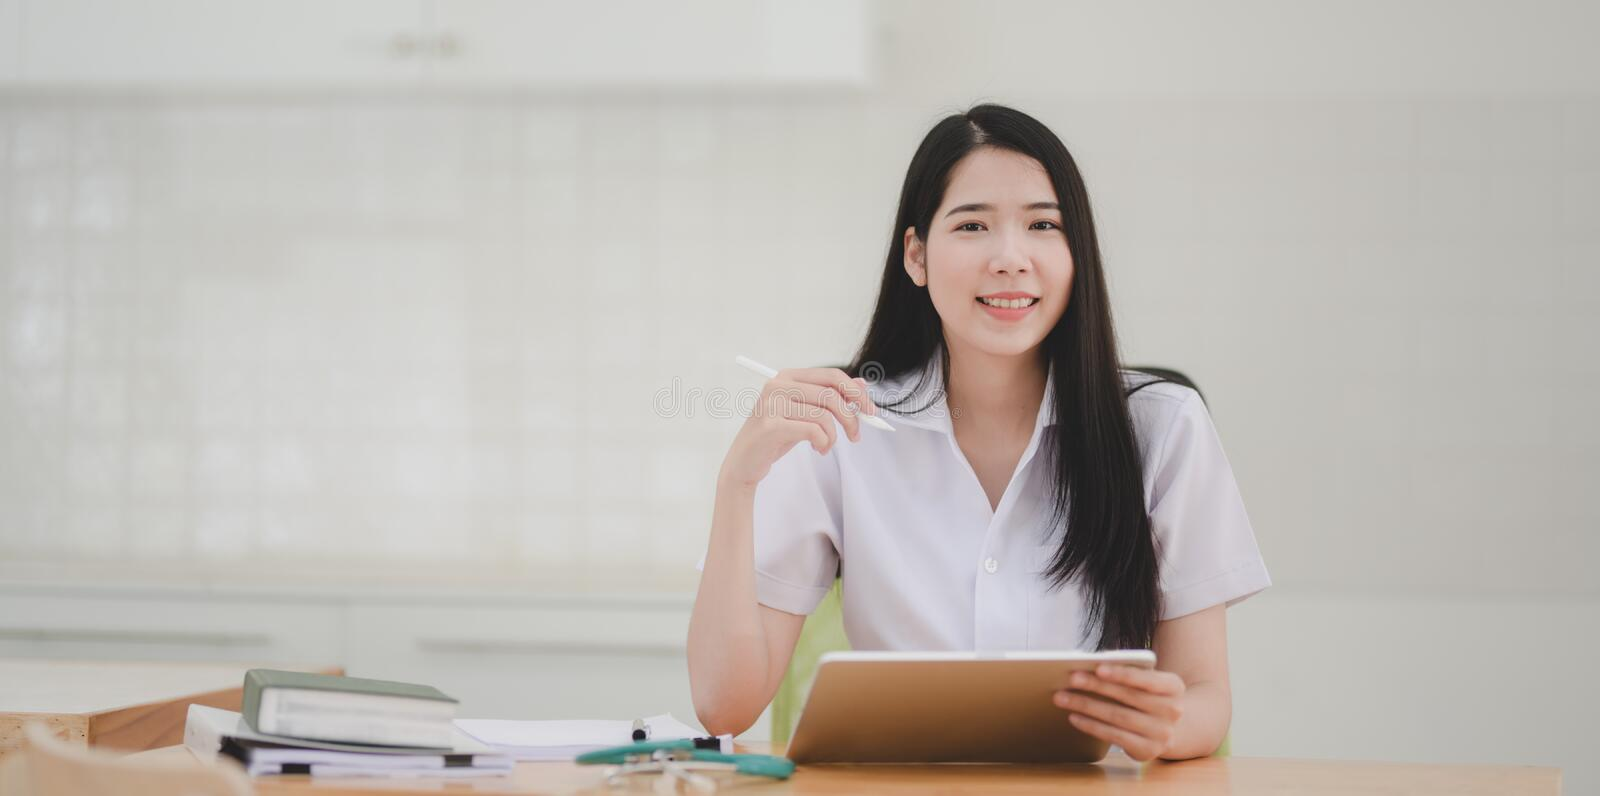 Portrait of young female doctor examining the patient chart and smiling to the camera royalty free stock images